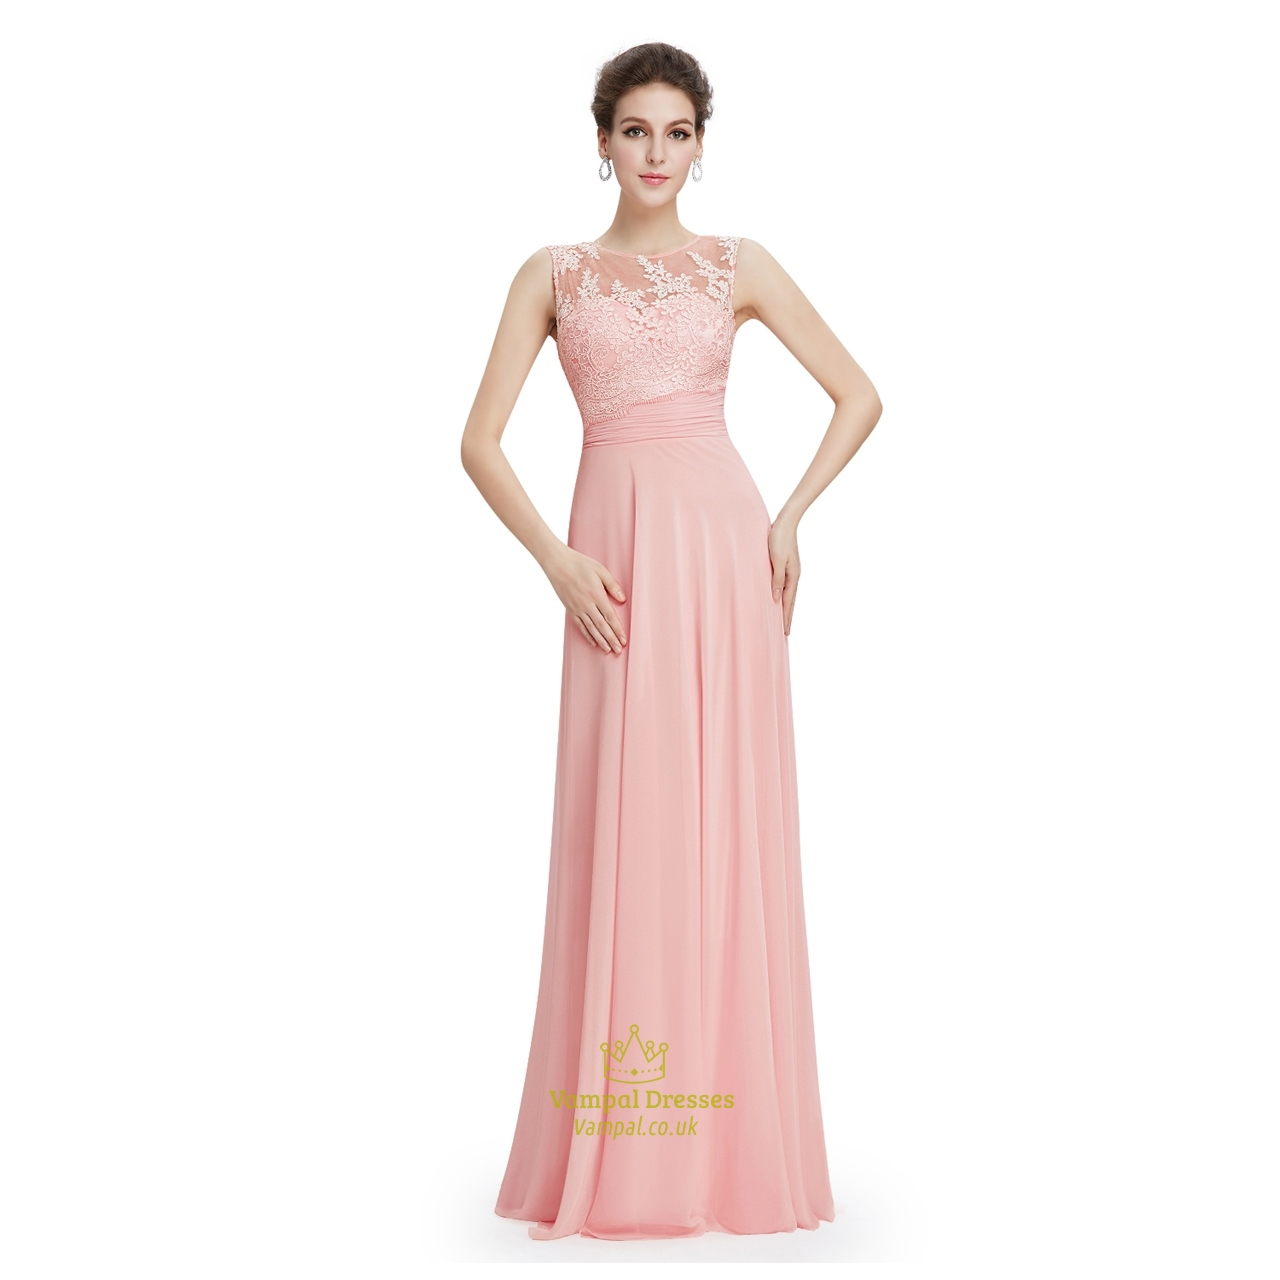 The Morilee Prom Dress Collection is fabulously fun and forward for the contemporary, confident woman. Swarovski crystals, sparkling fabrics and embroideries, lace, tulle, chiffon and jersey with modern detailing encompass the spectrum of this uniquely designed Collection.